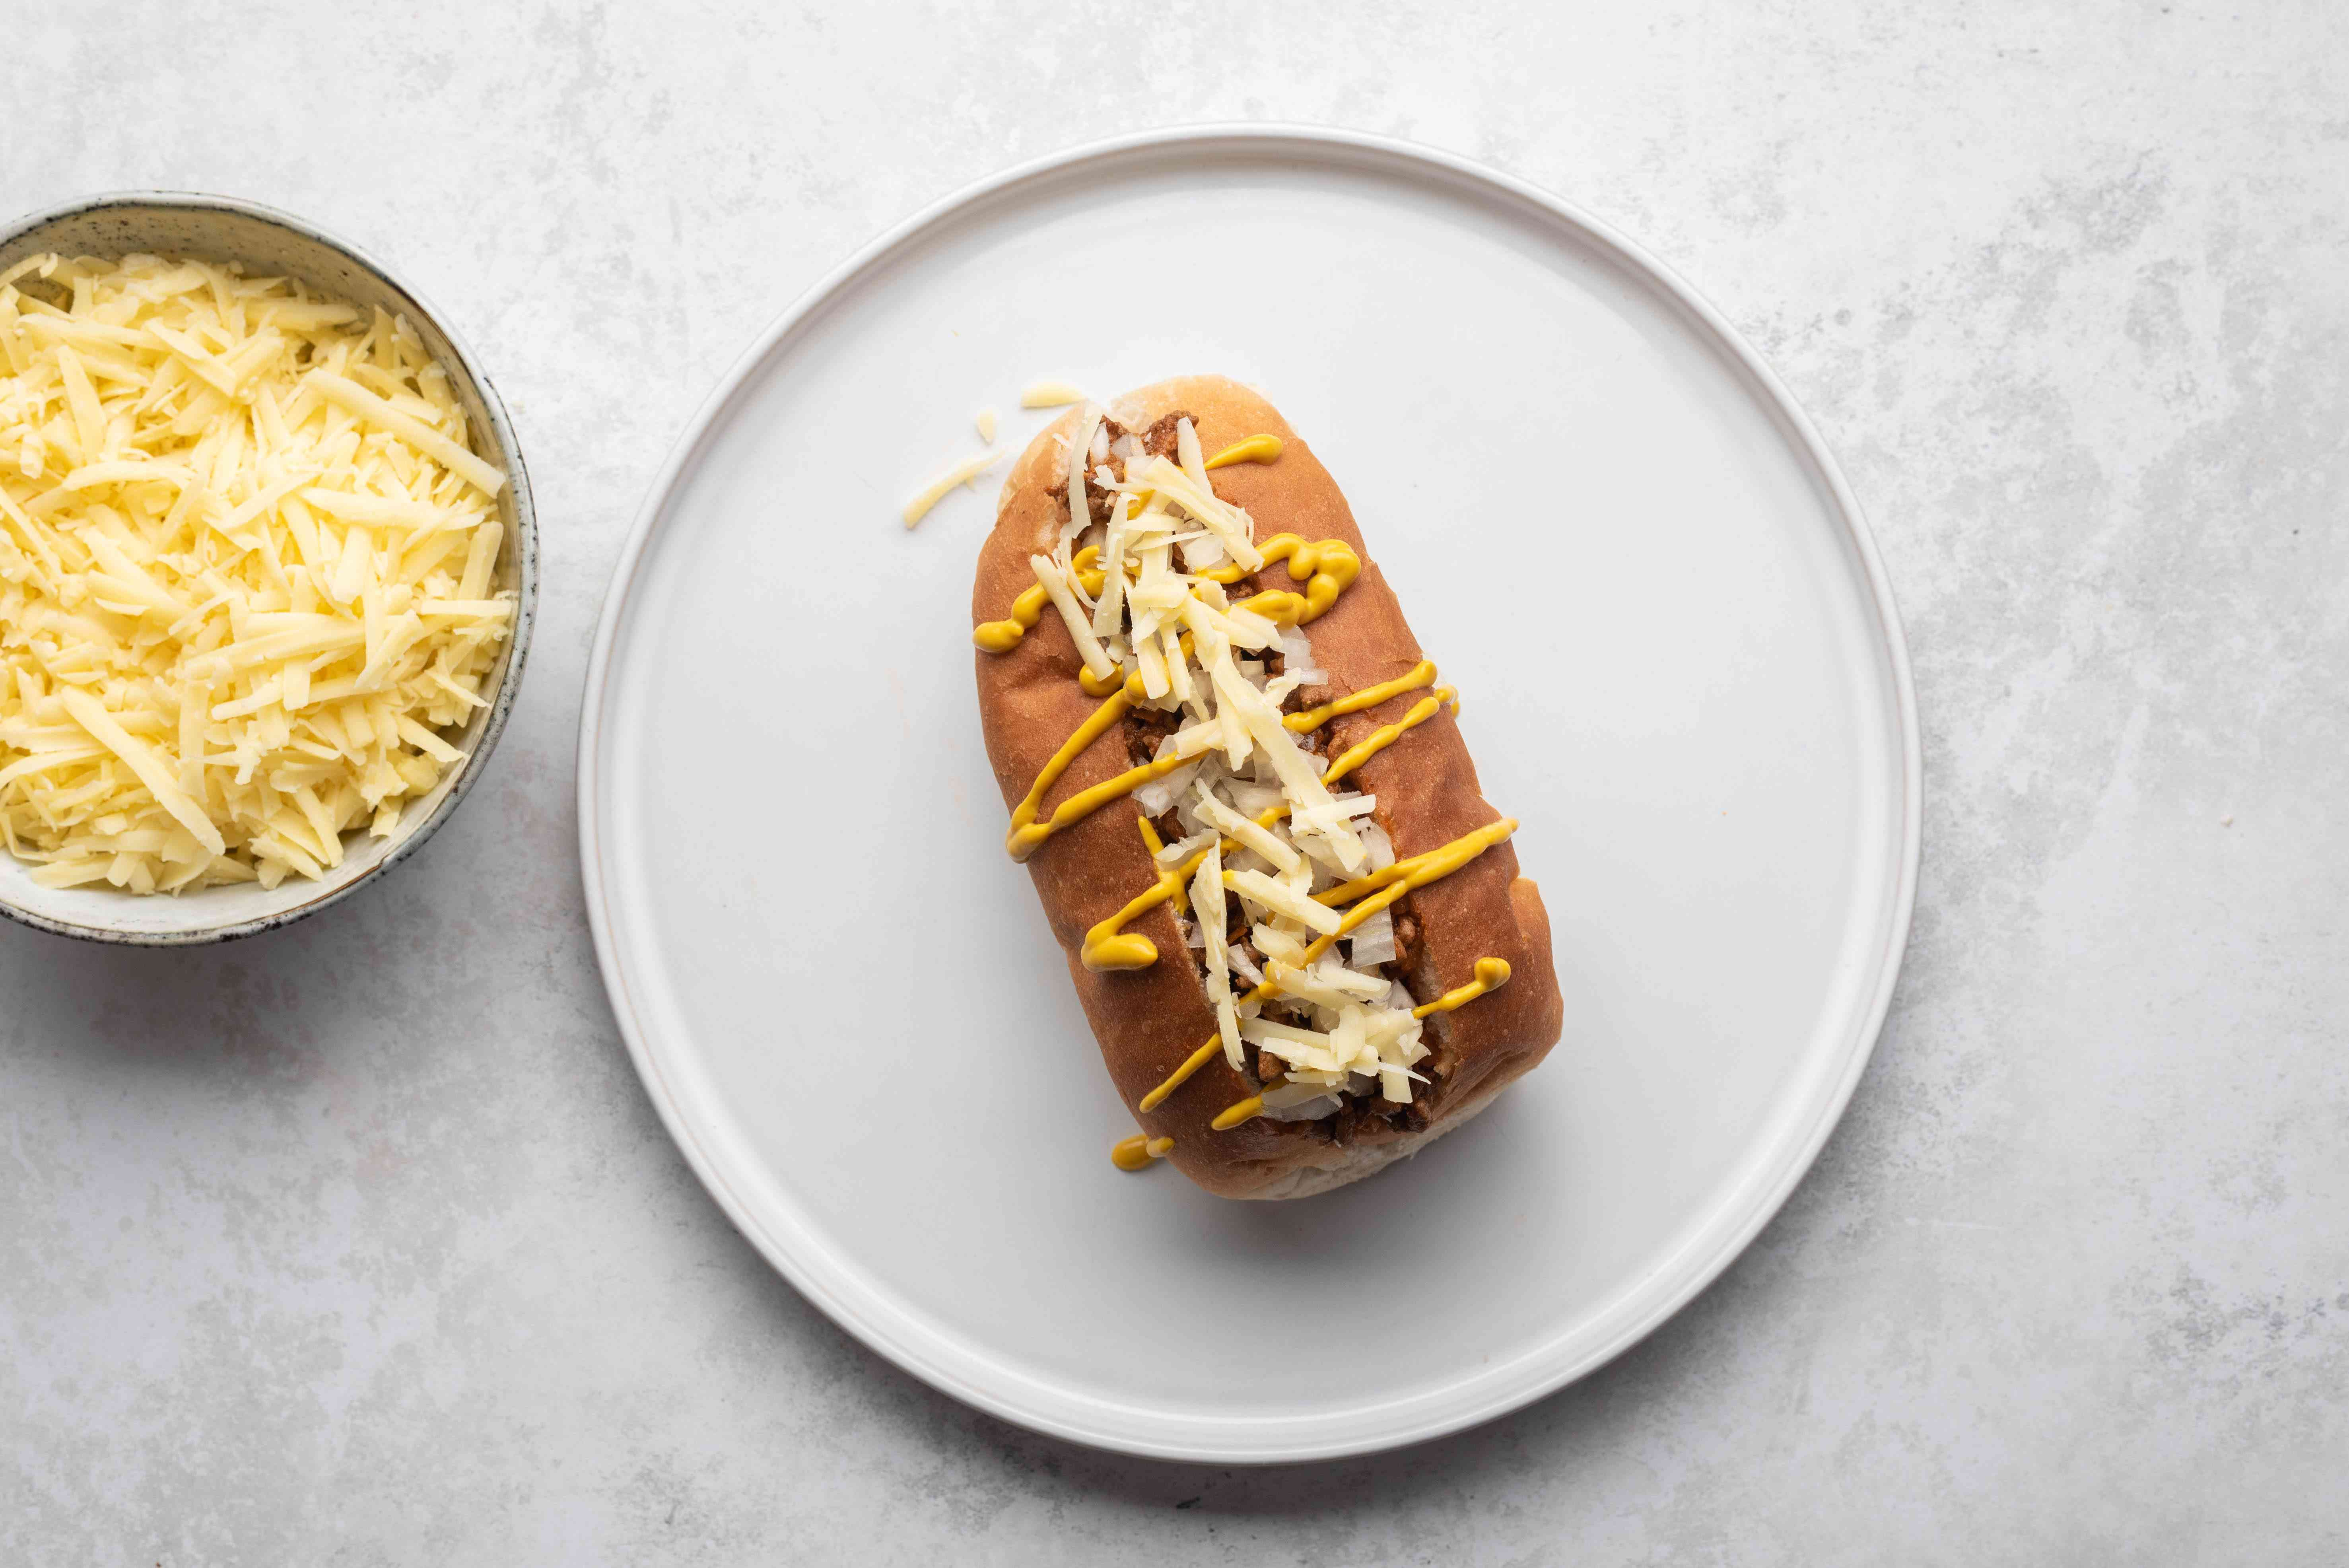 cheese on top of the mustard on the hot dog